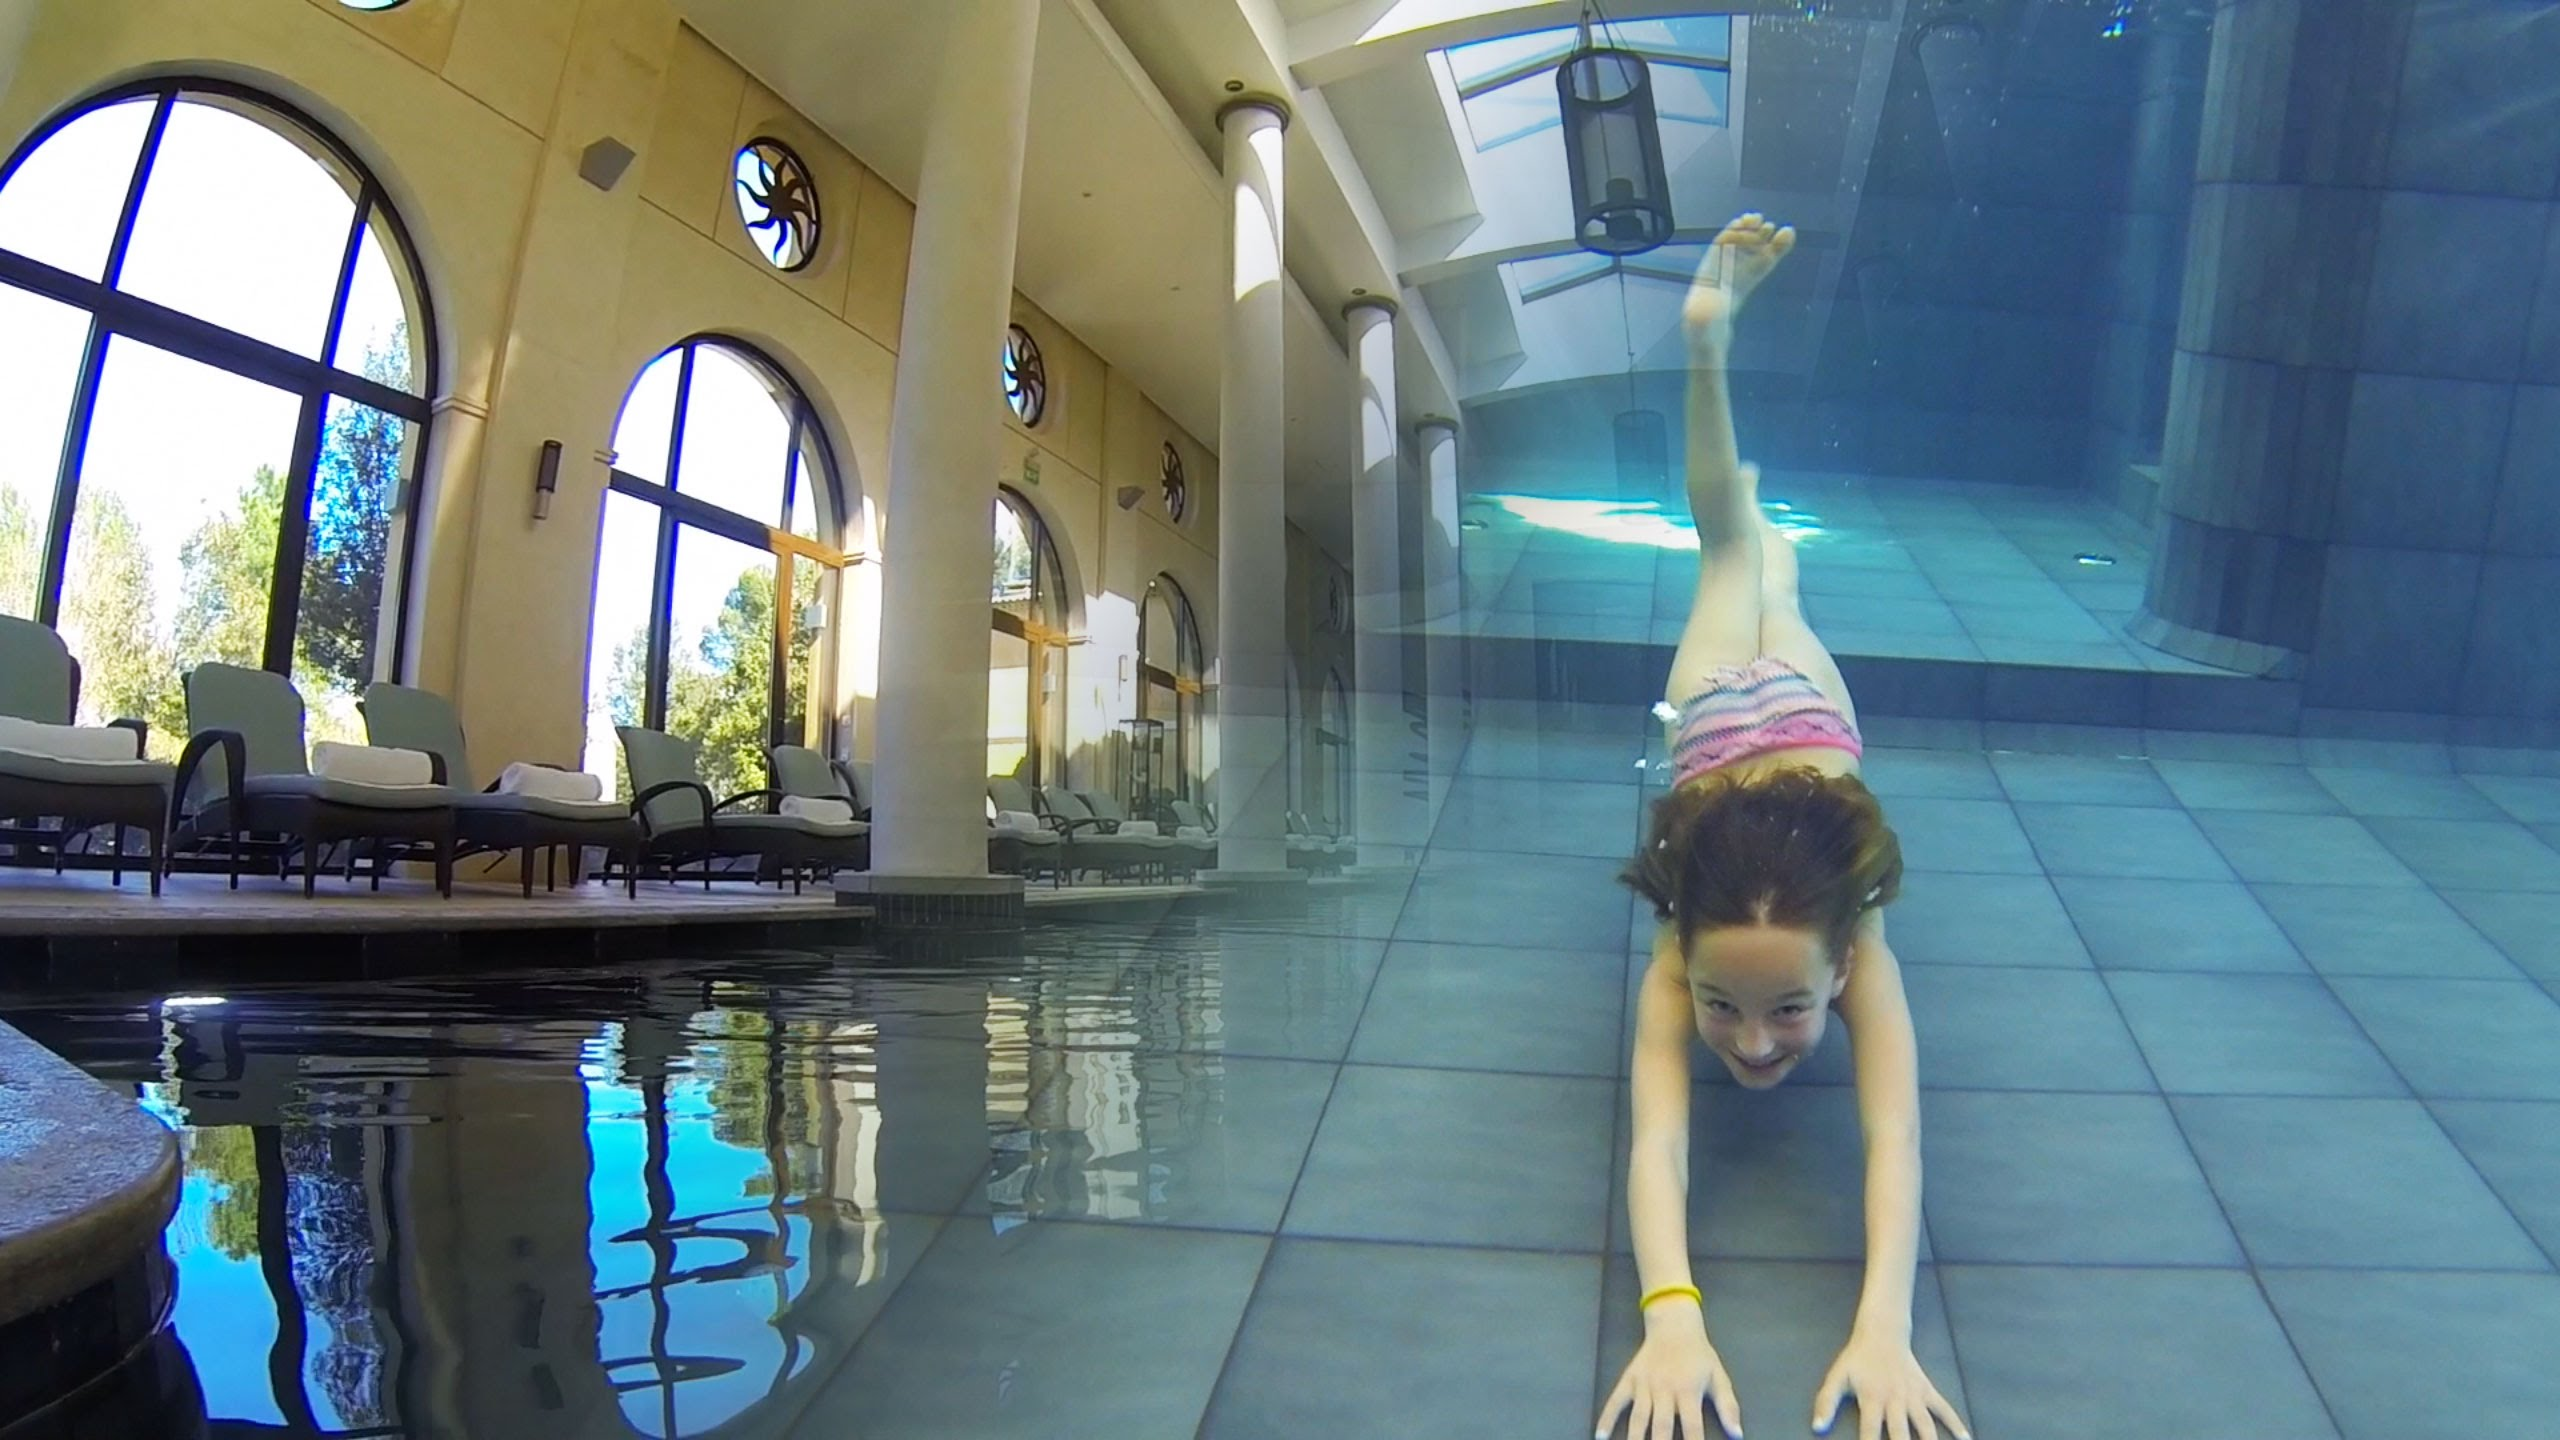 Carla Underwater – Amazing Inside swimming Pool